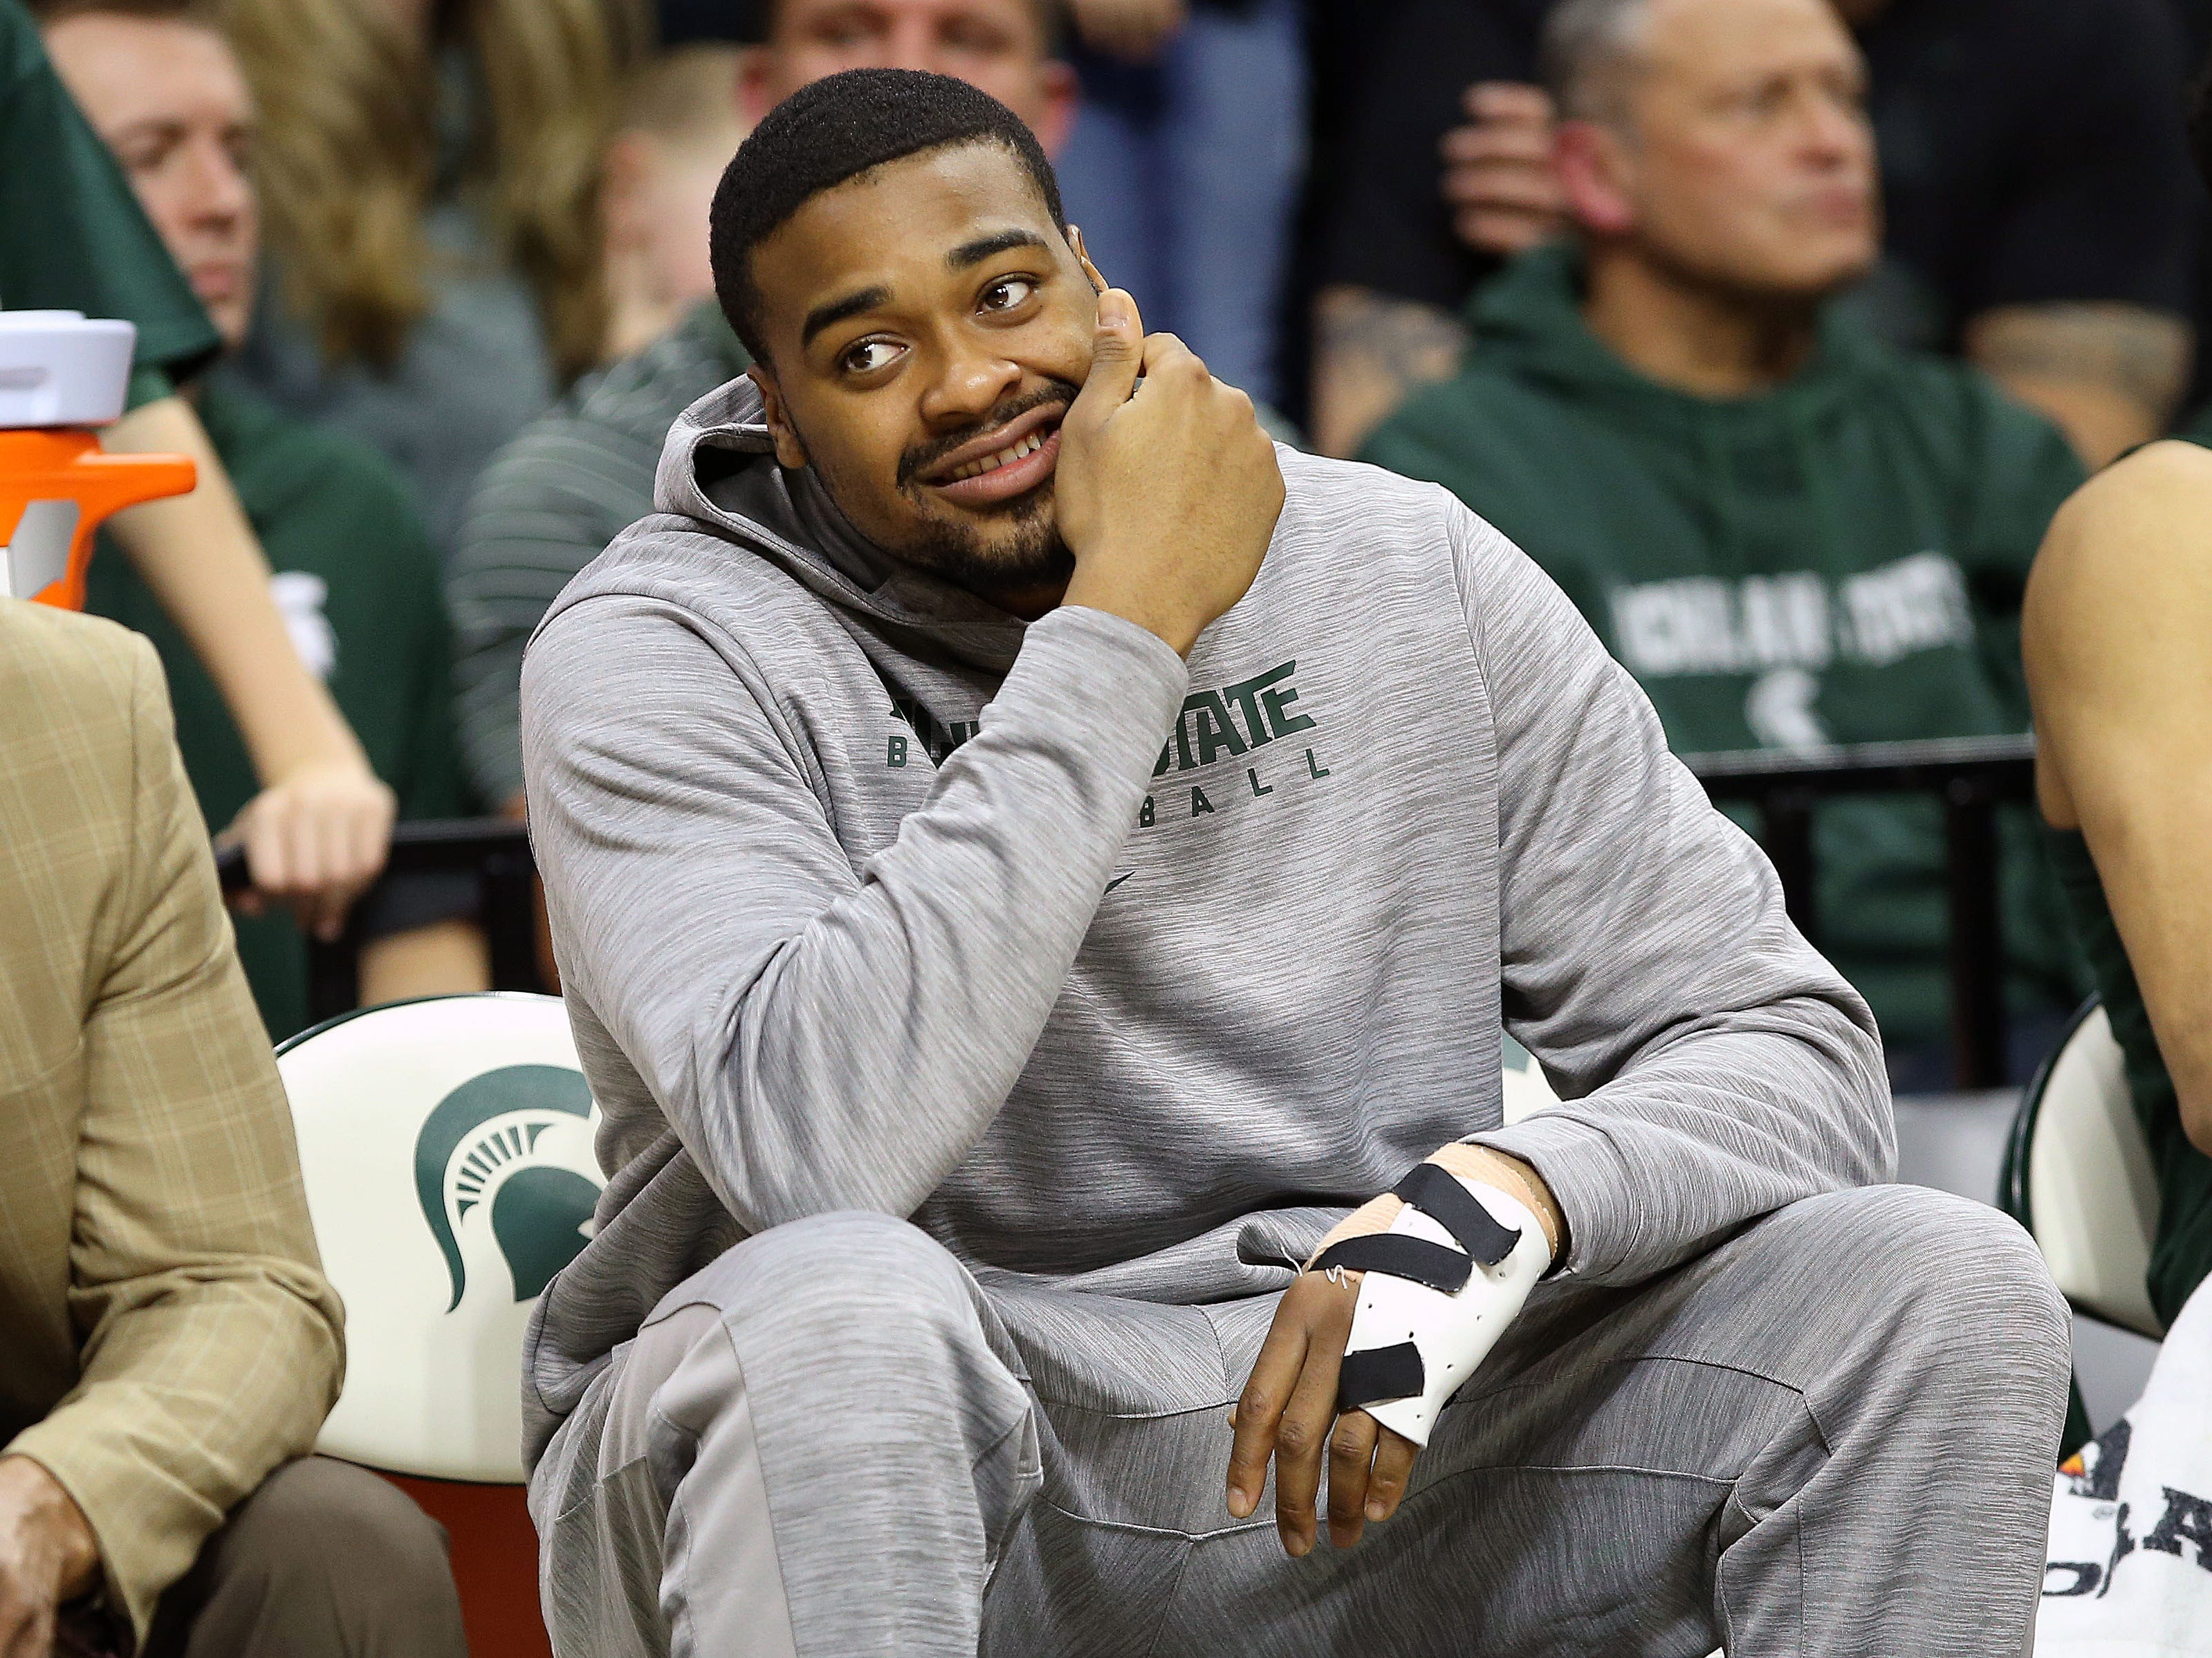 Mar 5, 2019; East Lansing, MI, USA; Michigan State Spartans forward Nick Ward (44) sits on the bench during the second half against the Nebraska Cornhuskers at the Breslin Center. Mandatory Credit: Mike Carter-USA TODAY Sports